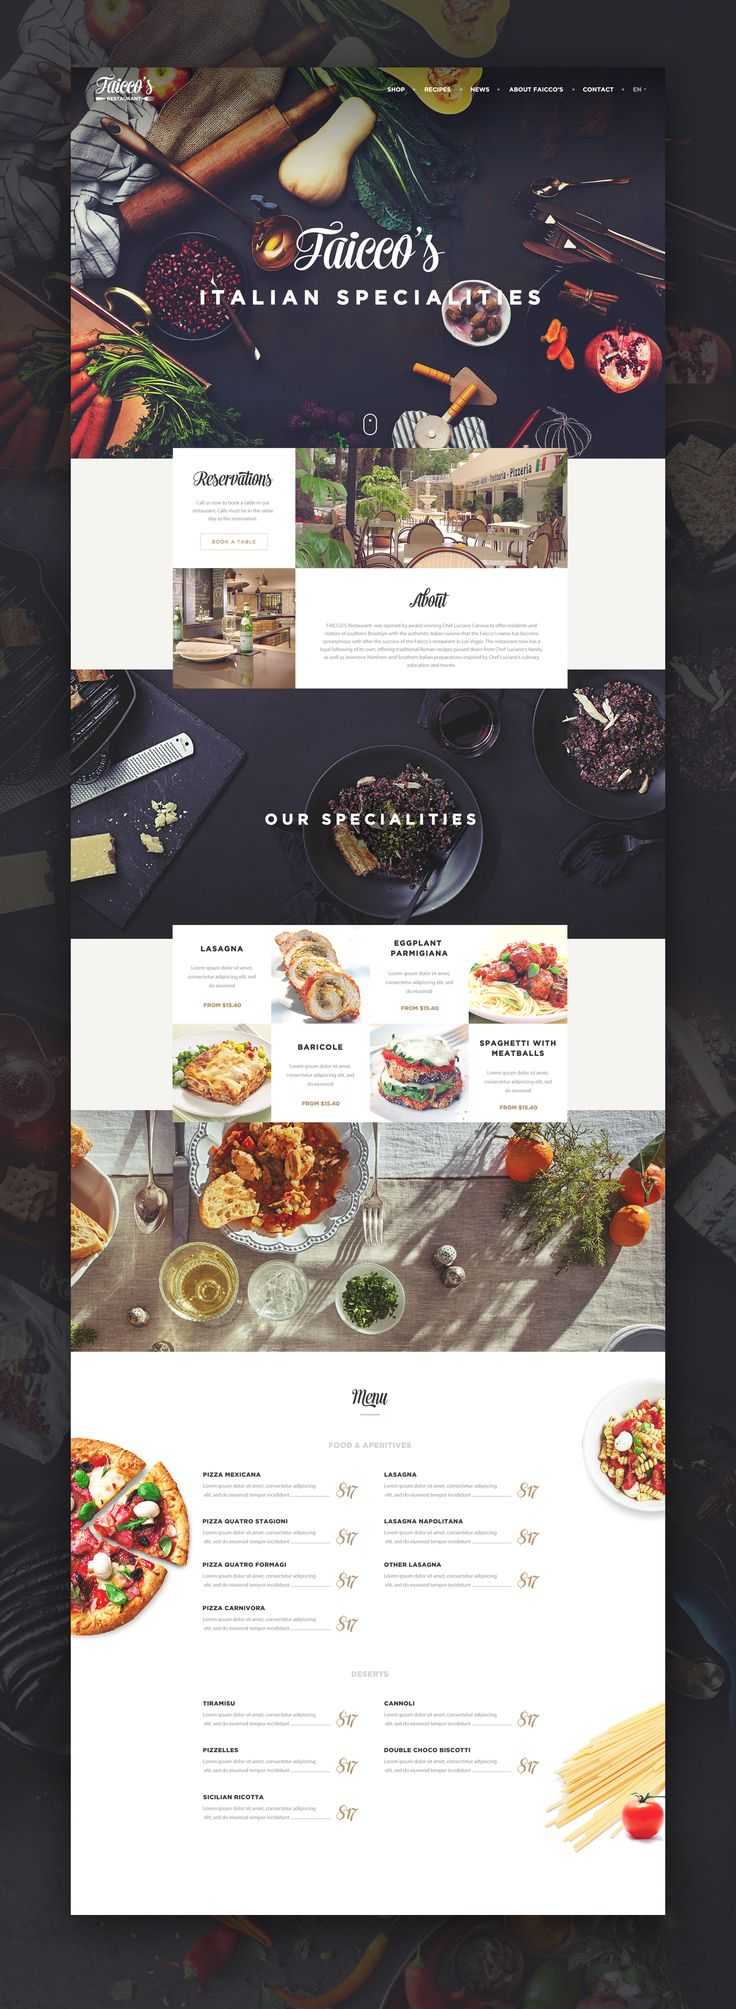 Faicco's italian Restaurant website restyling. Ui design concept by Virgil Pana on Dribbble.